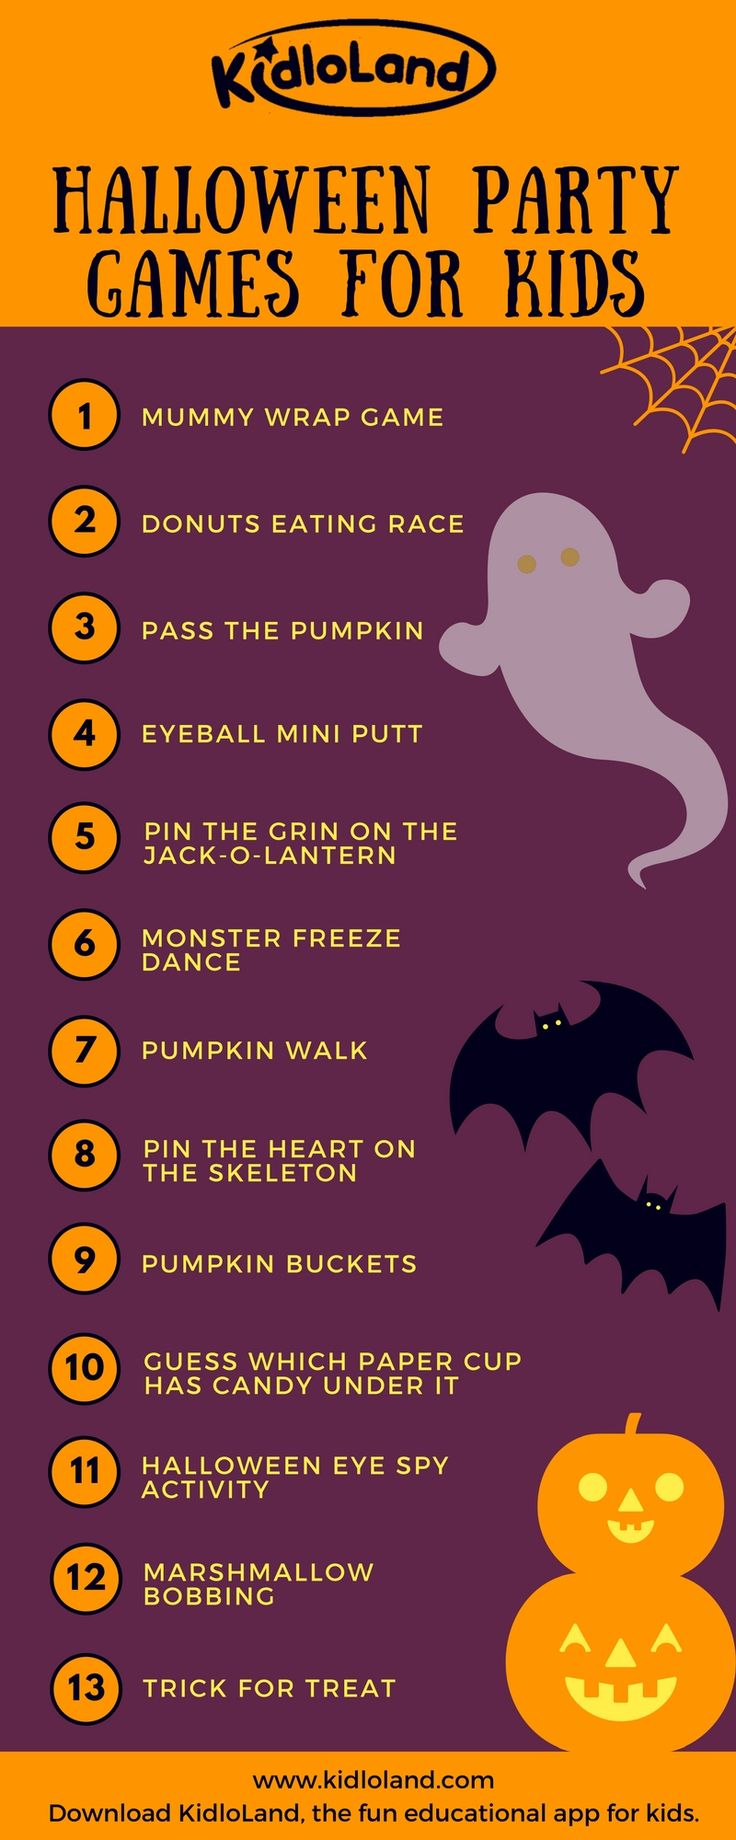 13 fun halloween party games for kids - Halloween Party Rules